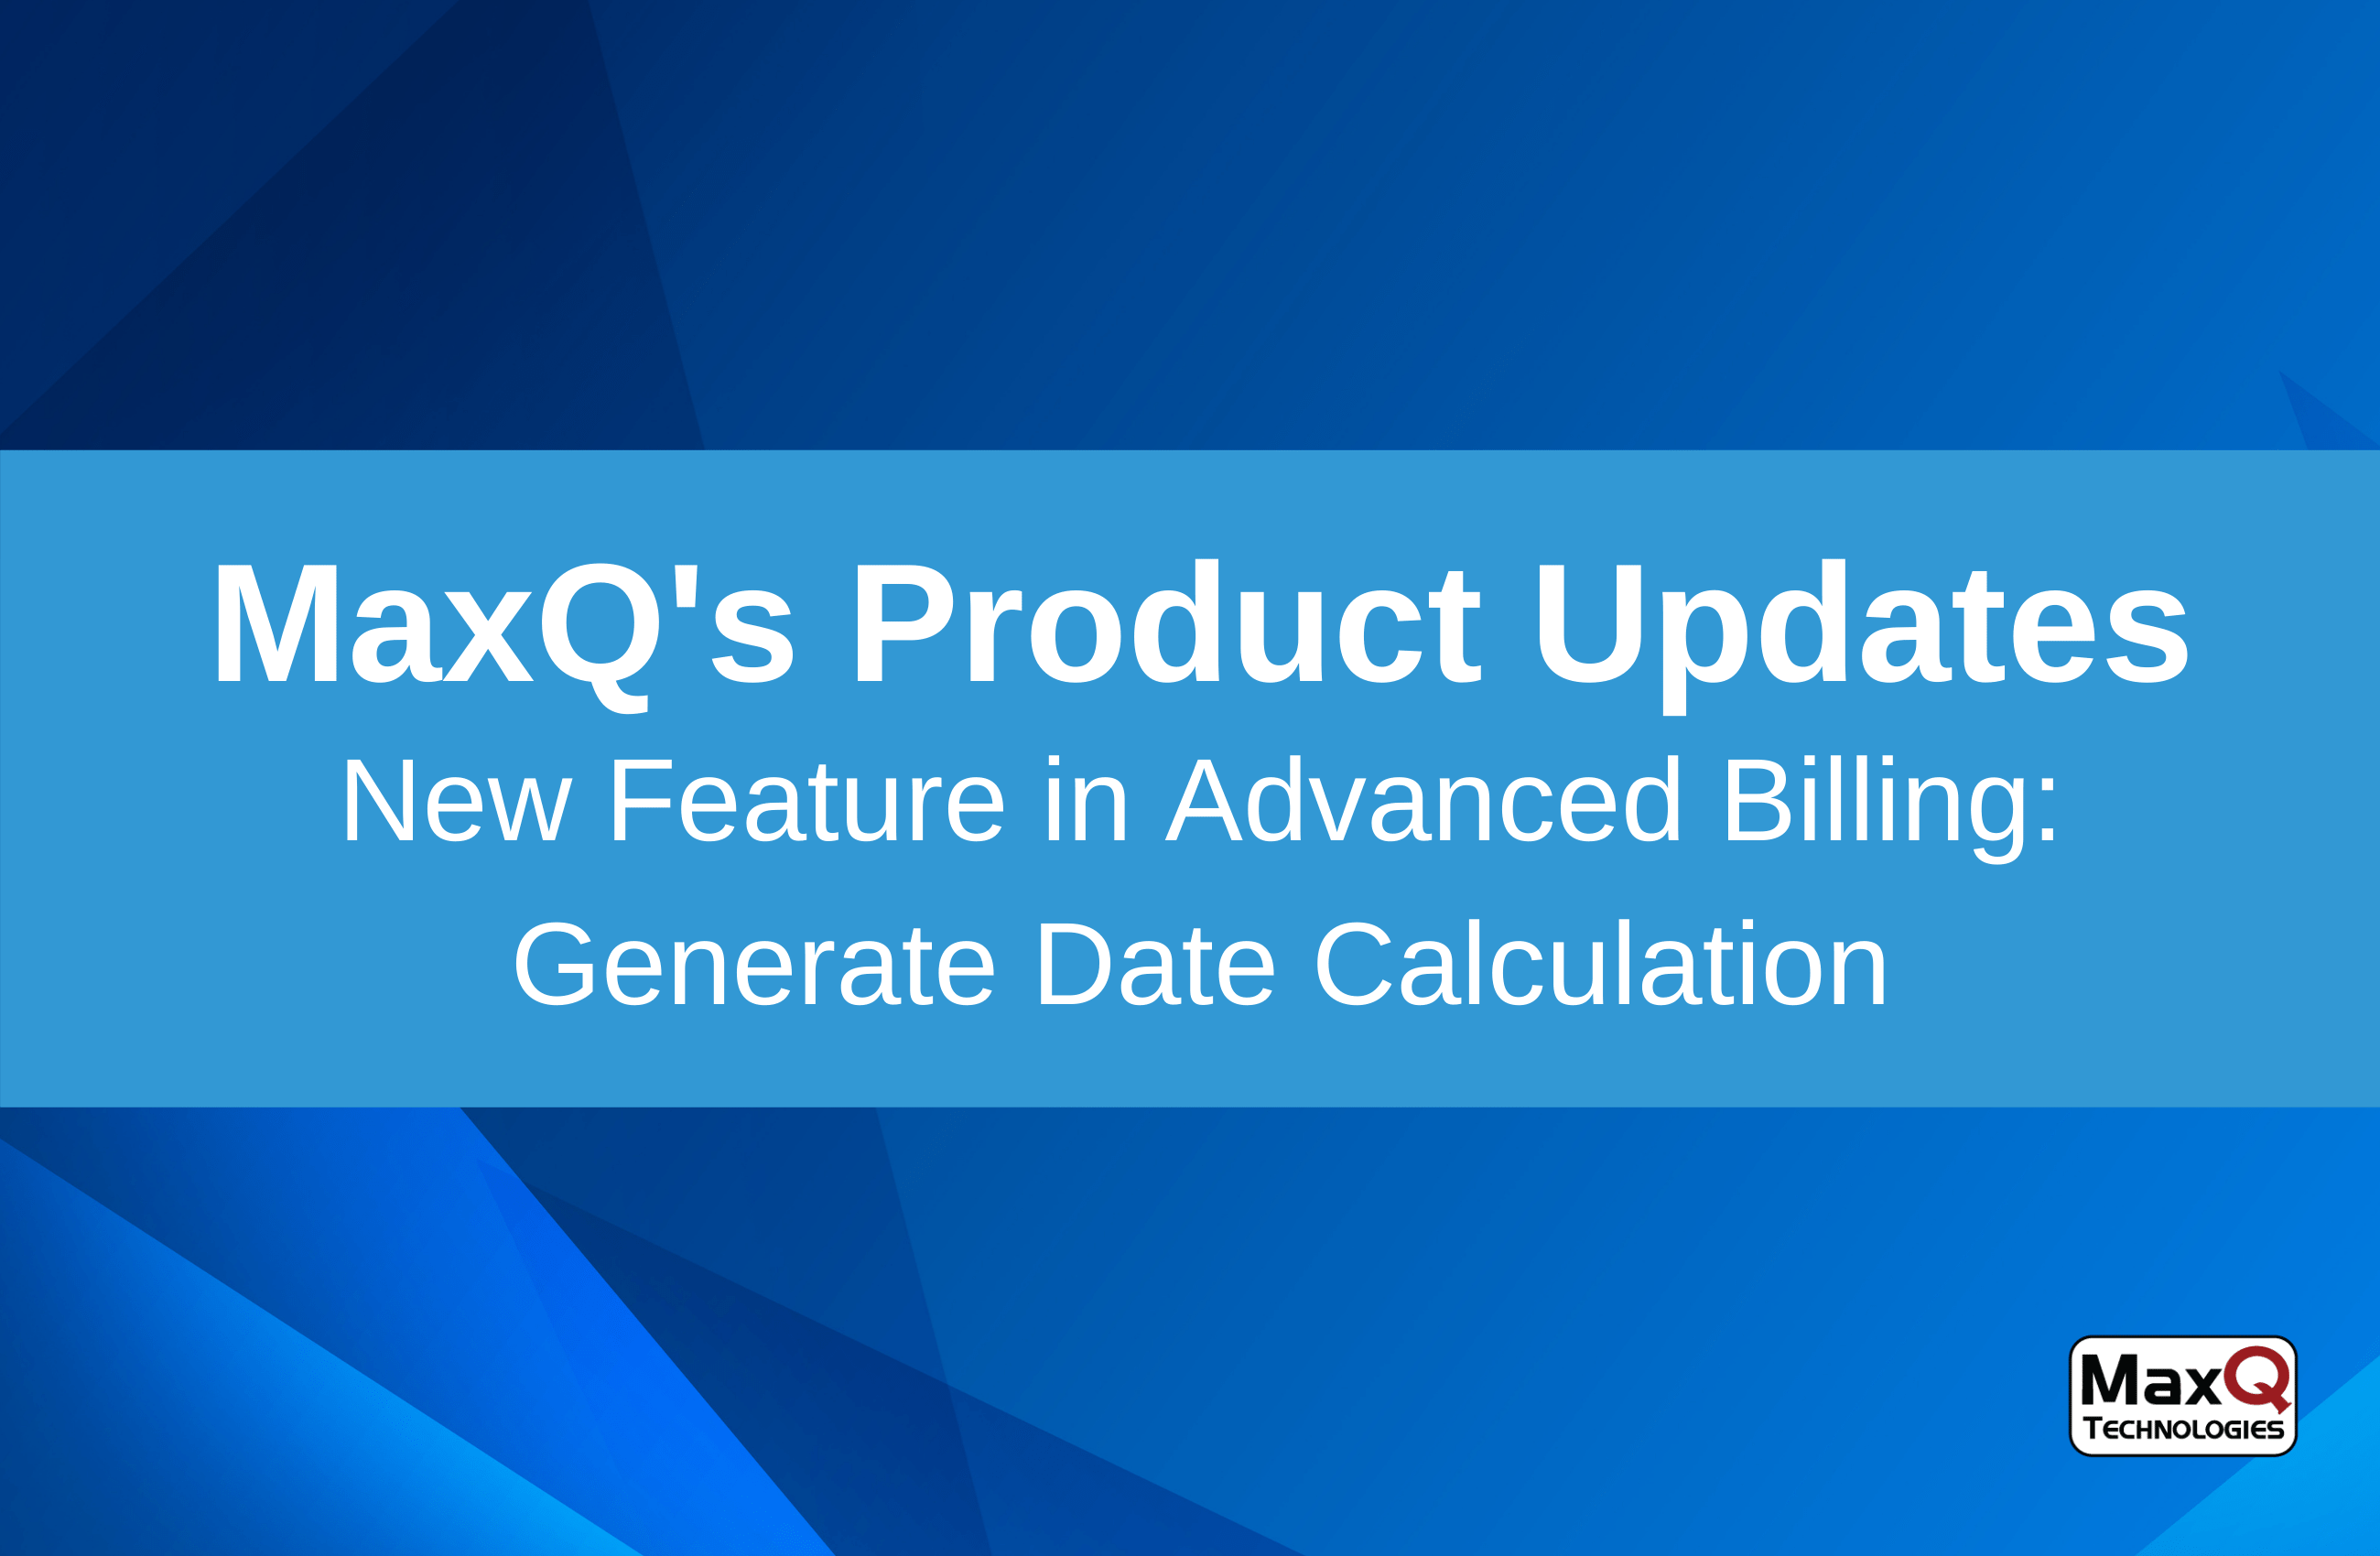 New Feature in Advanced Billing: Generate Date Calculation